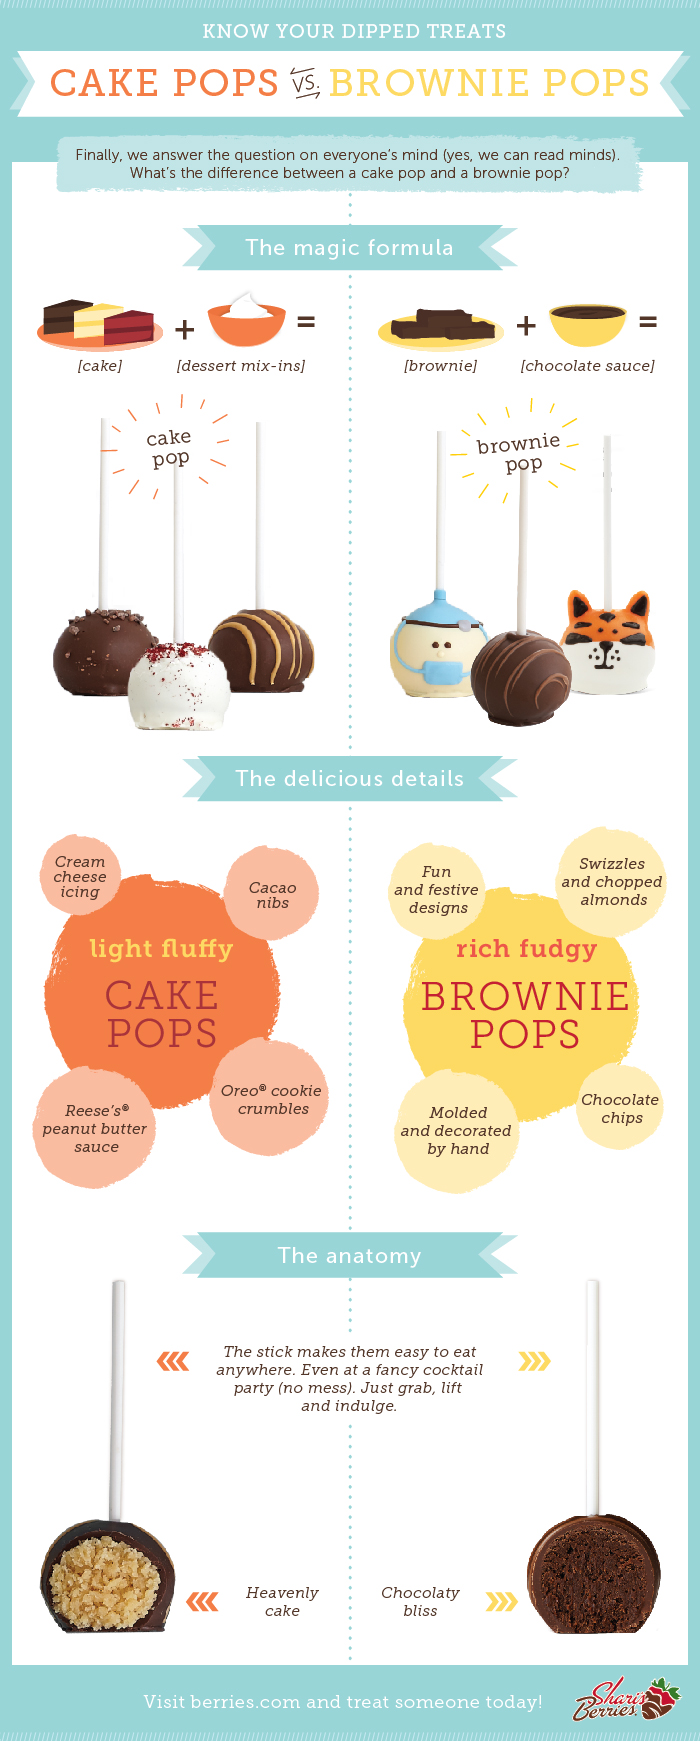 Cake Pops Vs Brownie Pops